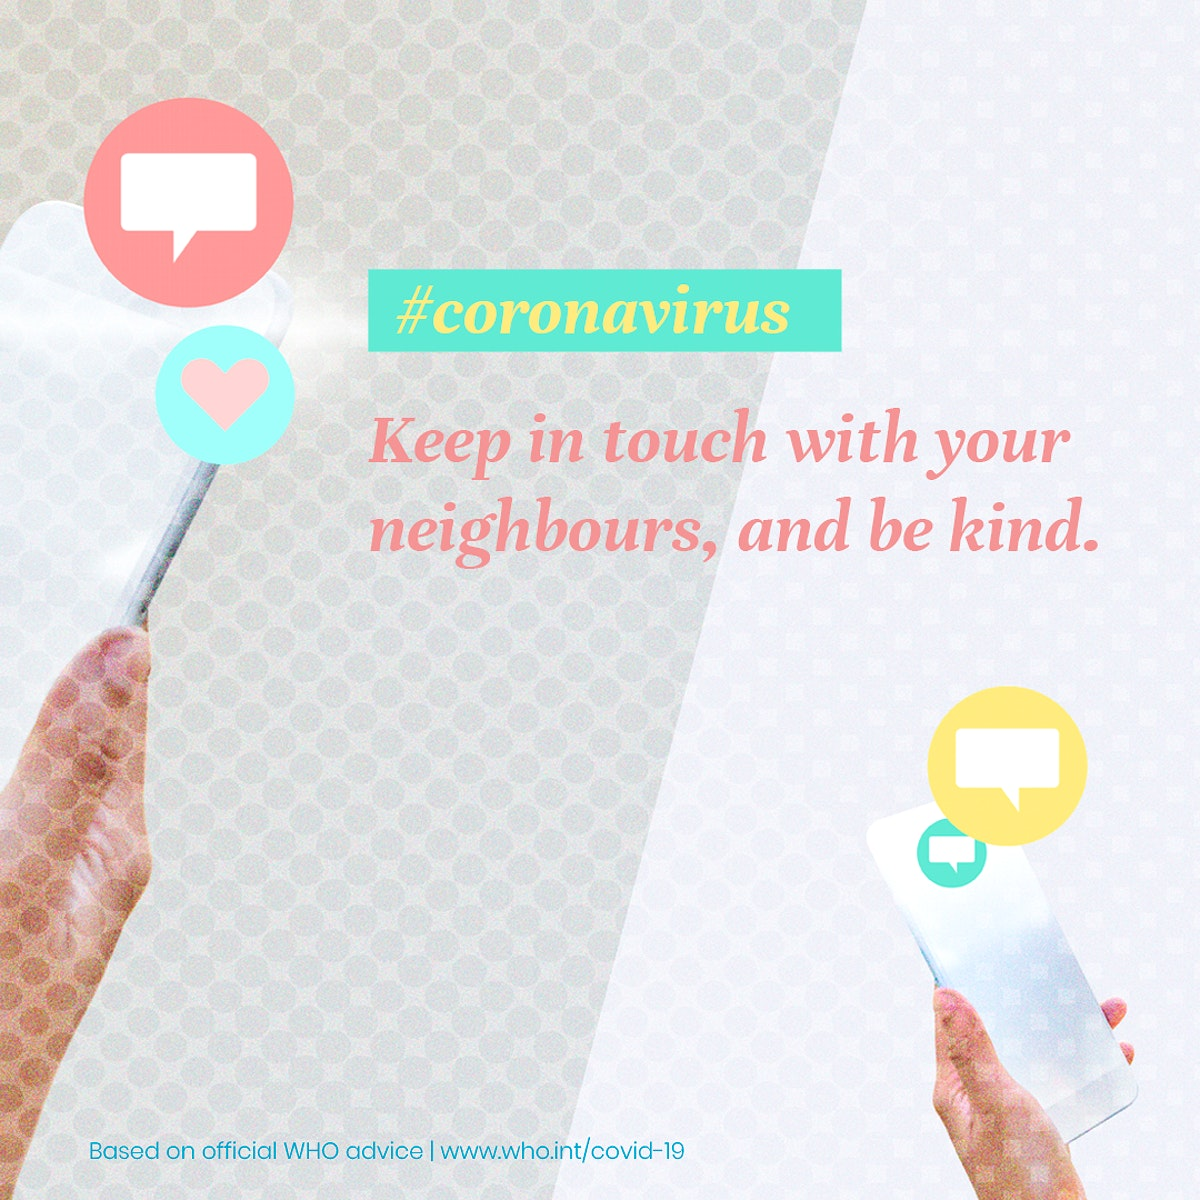 Help your neighbours during the COVID-19 pandemic psd mockup social ad